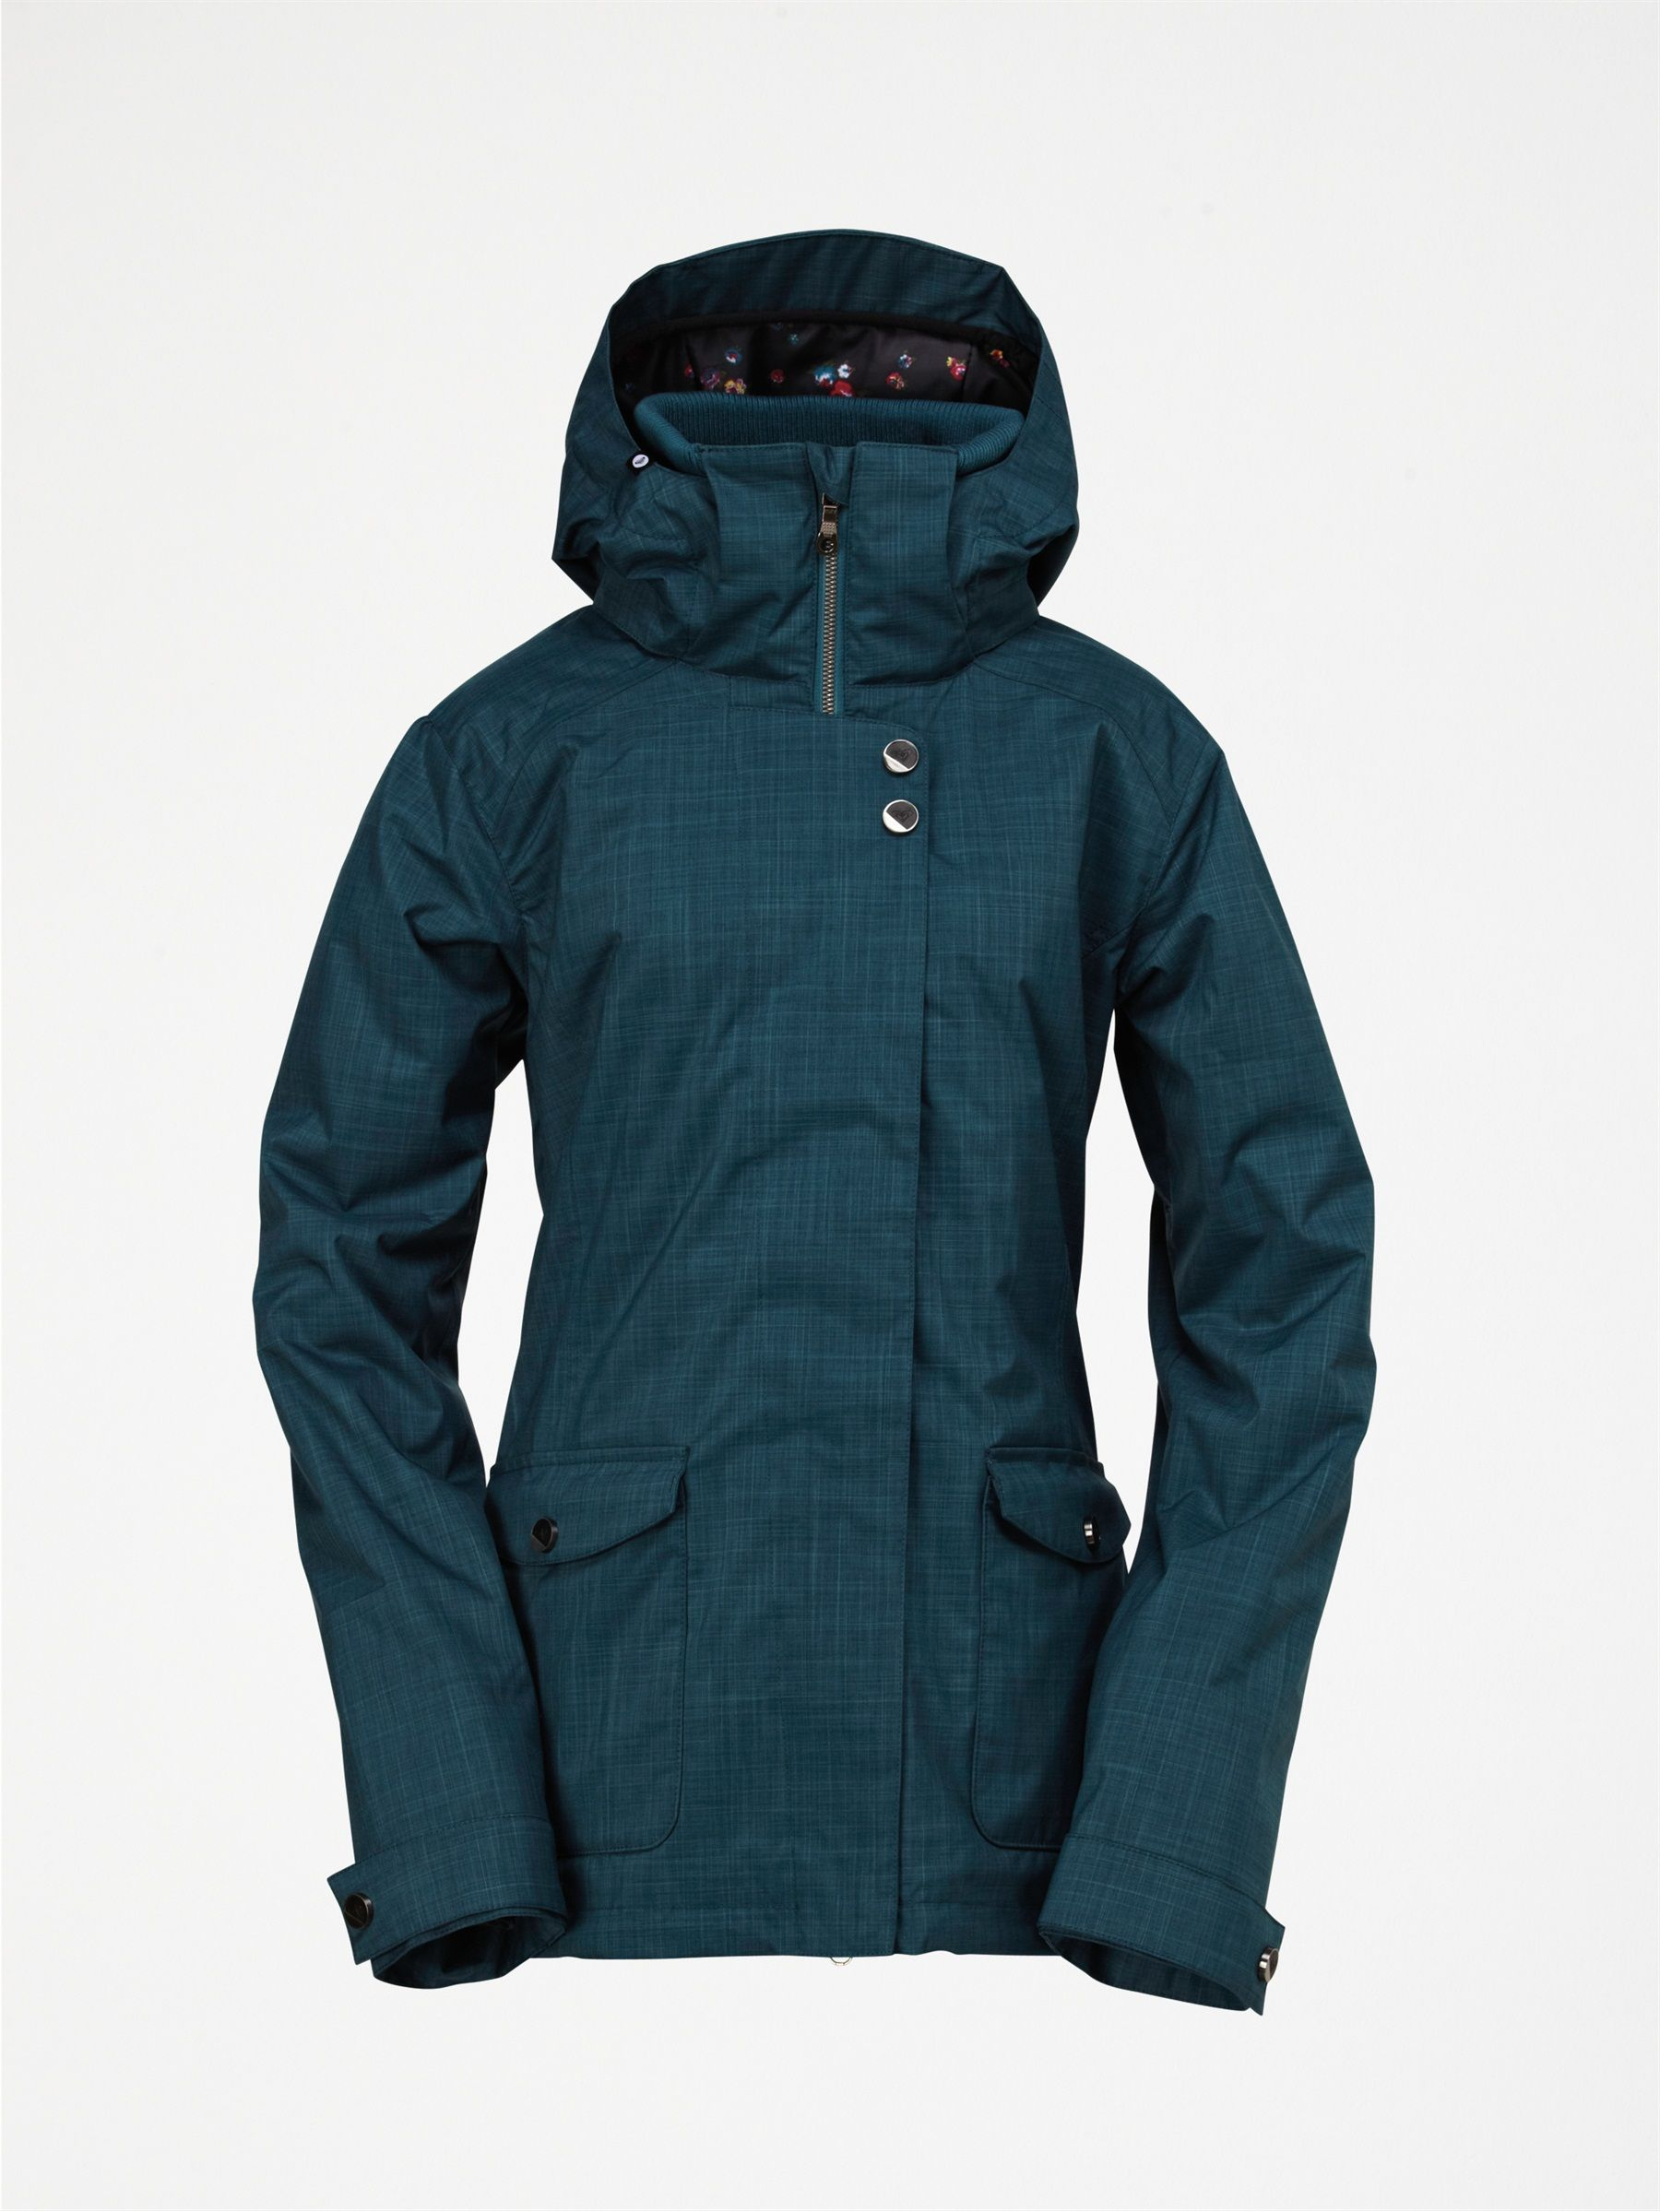 1c8bd1d89 roxy snow jacket | Pipe Dream | Womens snowboard jacket ...